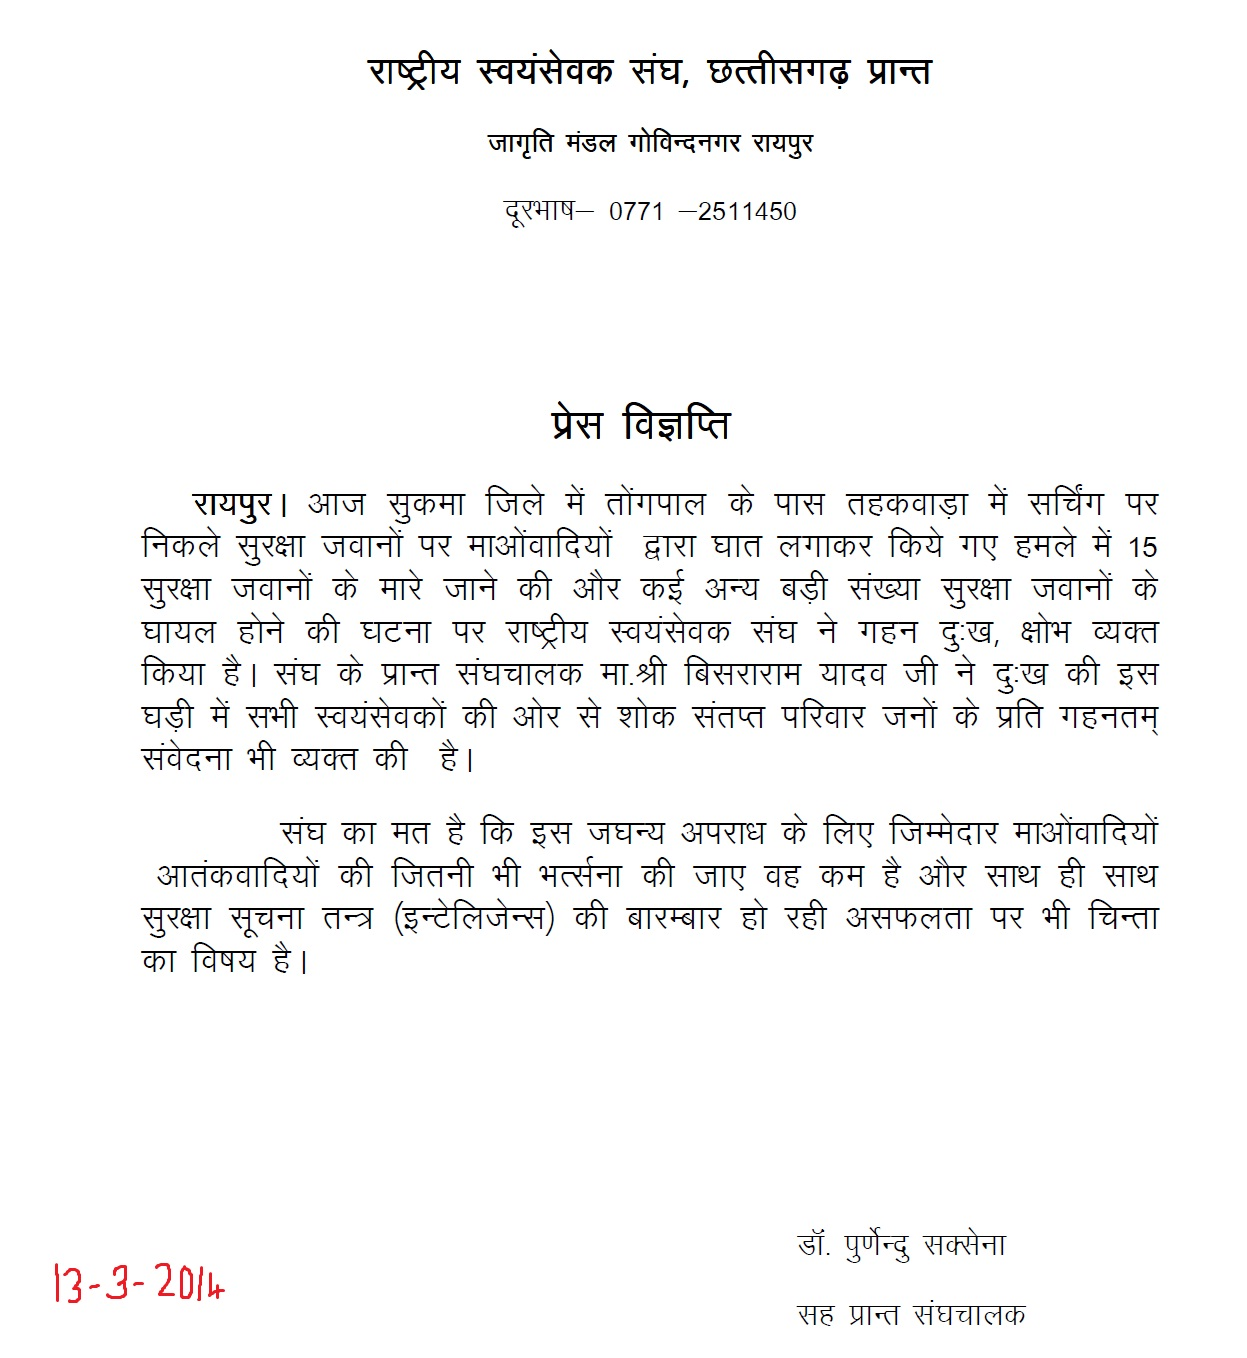 RSS Chattisgarh Press Release March 13, 2014